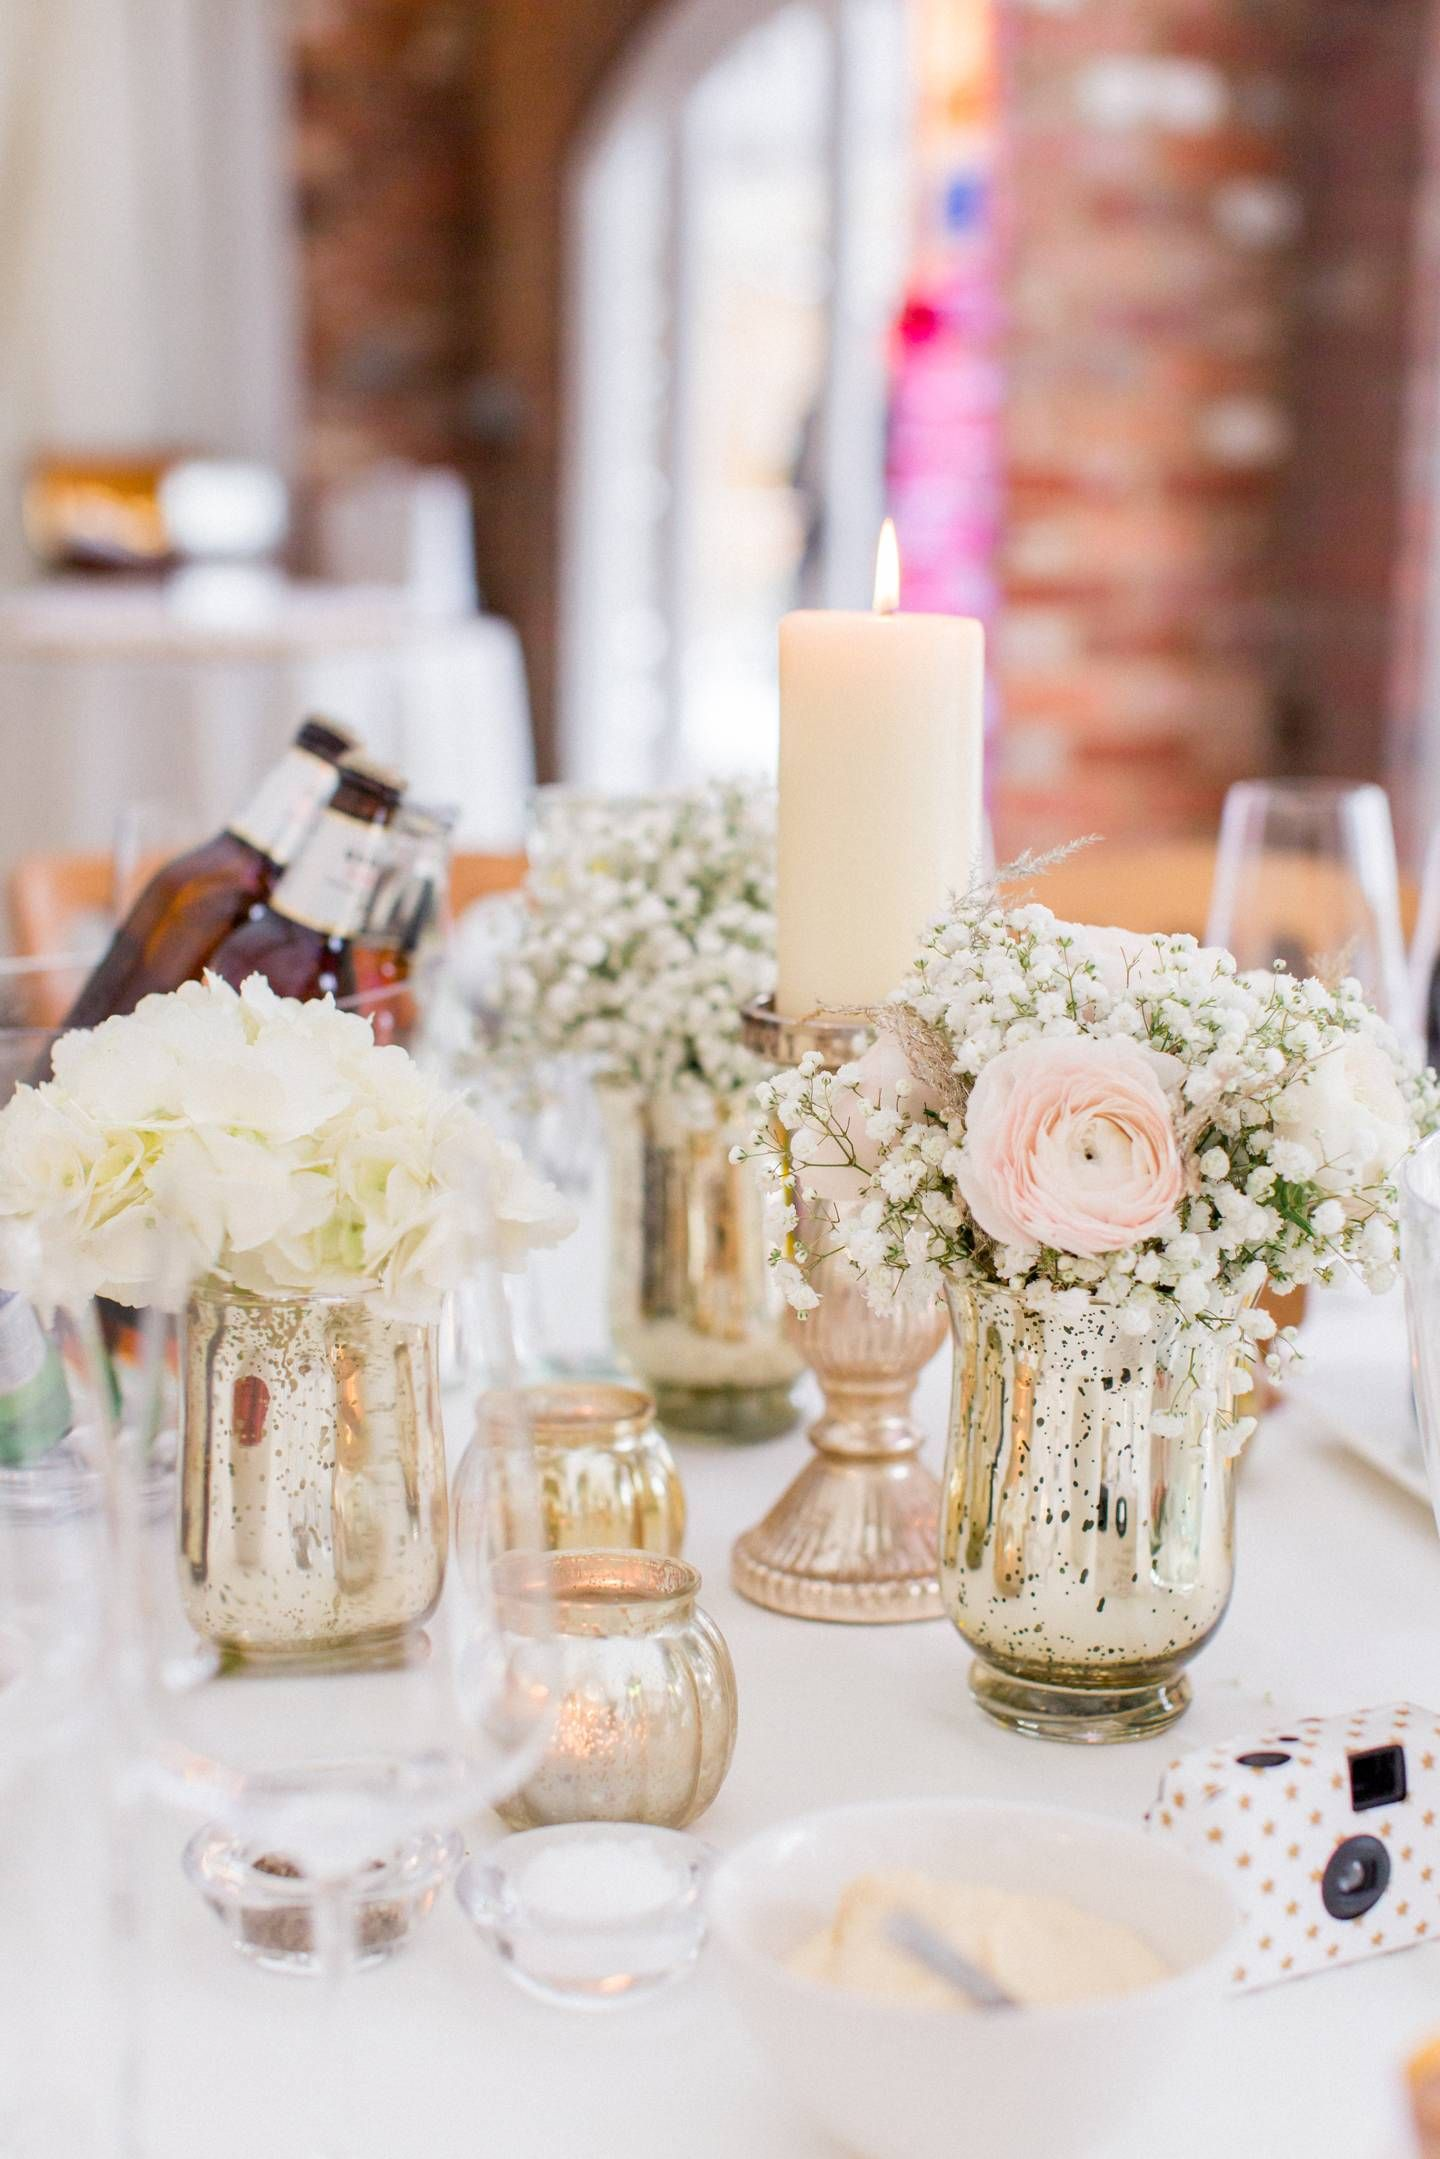 12 Wedding Table Decorations And Centerpieces To Spruce Up Your